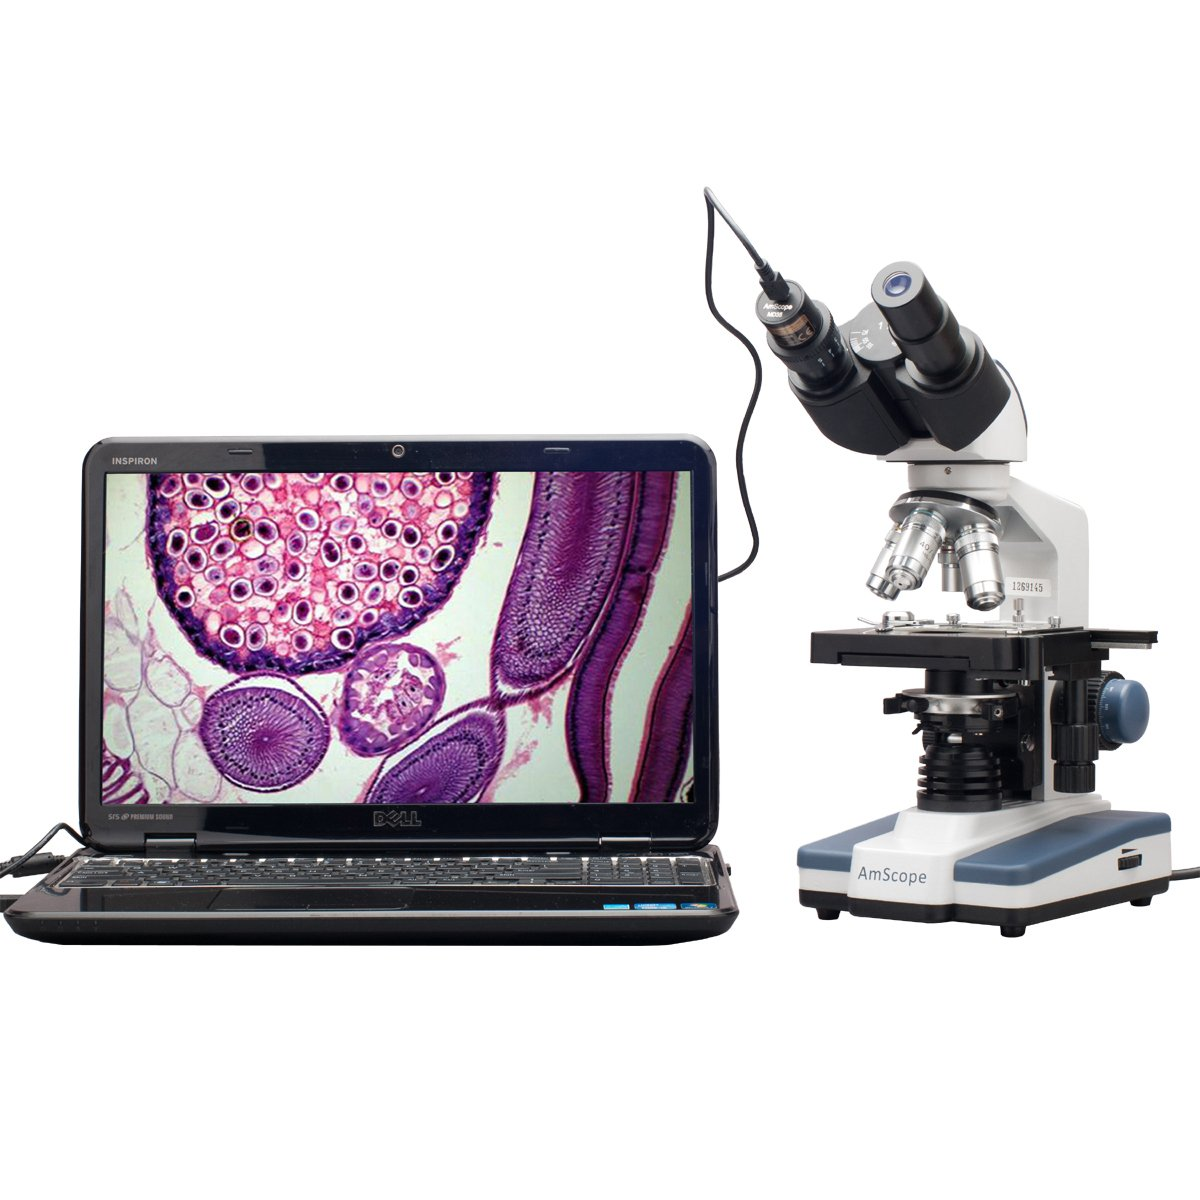 AmScope B120C-E1 Siedentopf Binocular Compound Microscope, 40X-2500X Magnification, LED Illumination, Abbe Condenser, Two-Layer Mechanical Stage, 1.3MP Camera and Software Windows XP/Vista/7/8/10 by AmScope